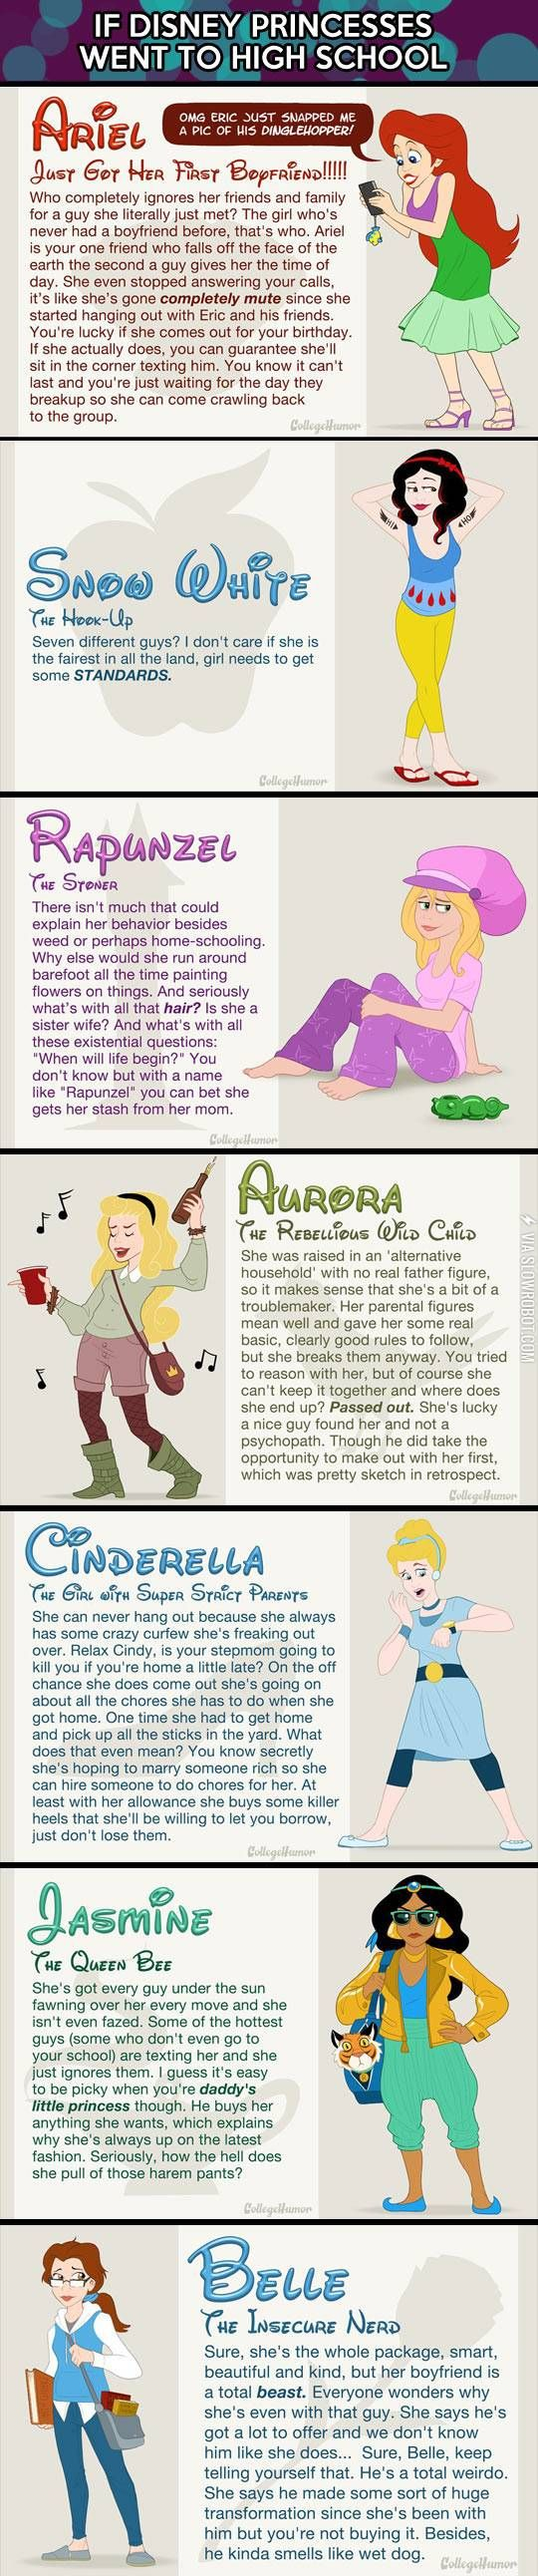 Disney Princesses: